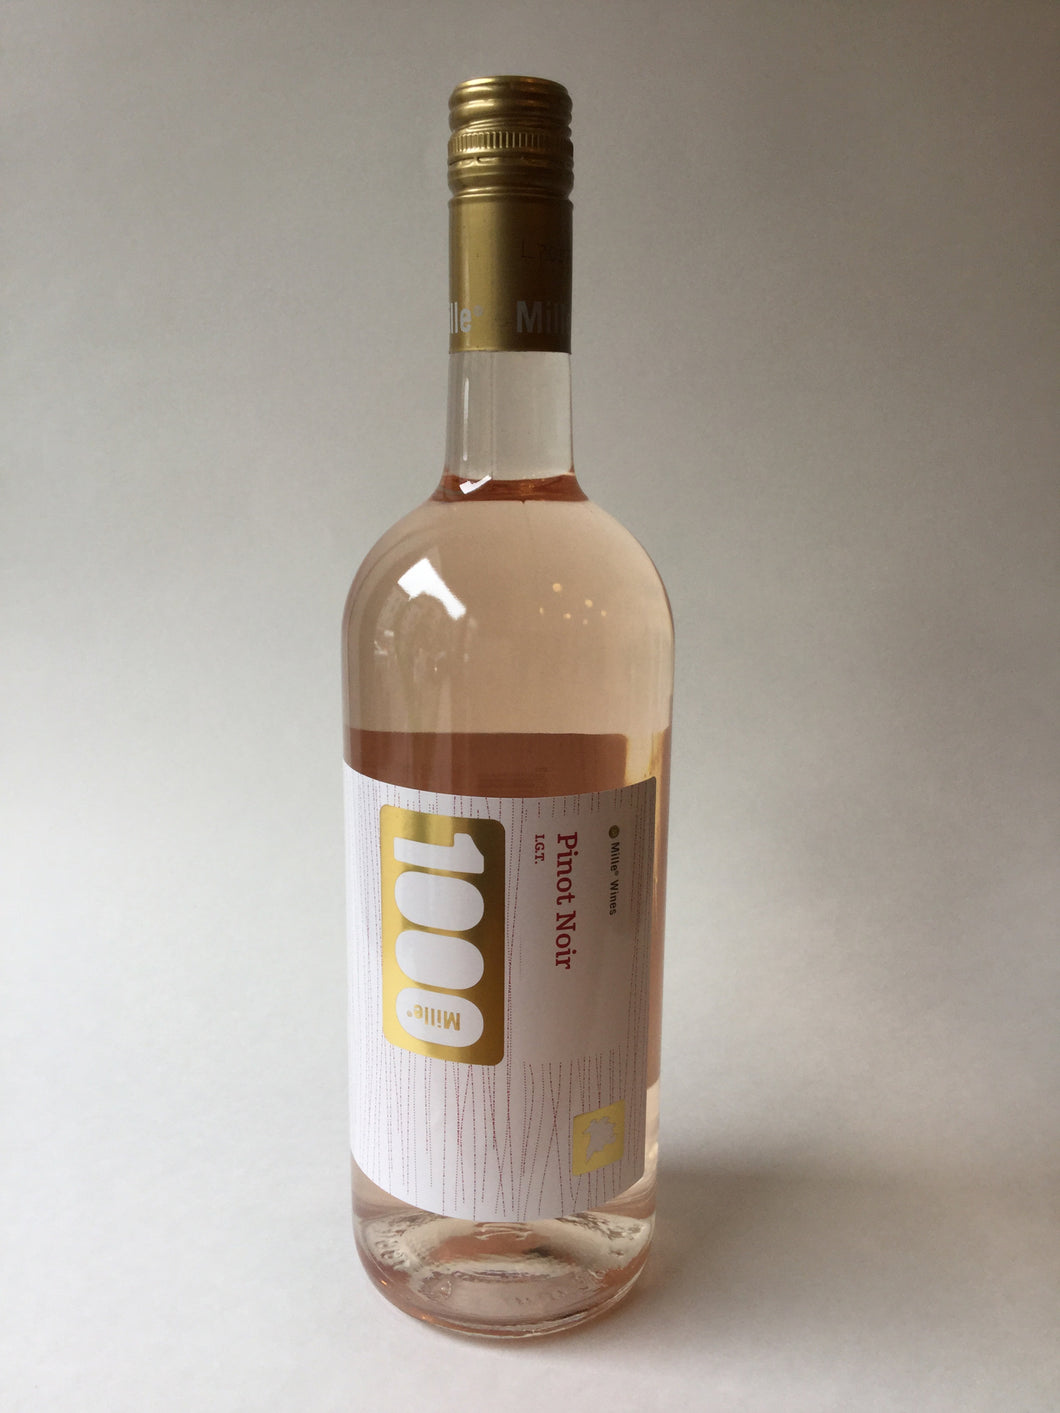 Mille 1000 Pinot Noir Rosato, 1L - Frankly Wines